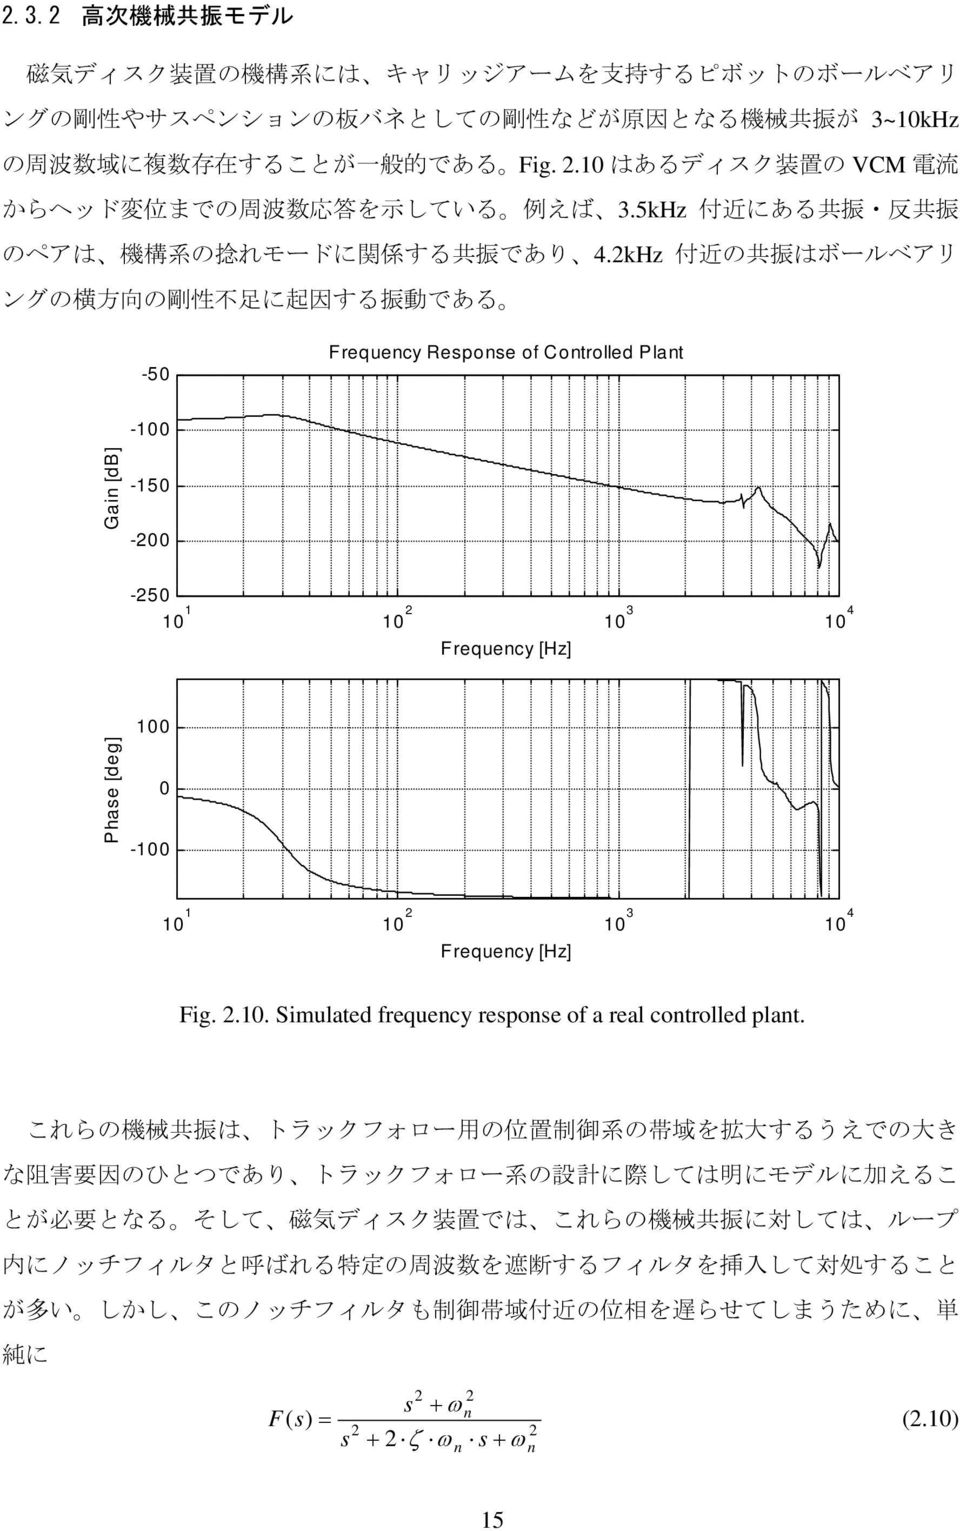 kHz 付 近 の 共 振 はボールベアリ ングの 横 方 向 の 剛 性 不 足 に 起 因 する 振 動 である -50 Frequency Response of Controlled Plant -00 Gain [db] -50-00 -50 0 0 0 3 0 4 Frequency [Hz] Phase [deg] 00 0-00 0 0 0 3 0 4 Frequency